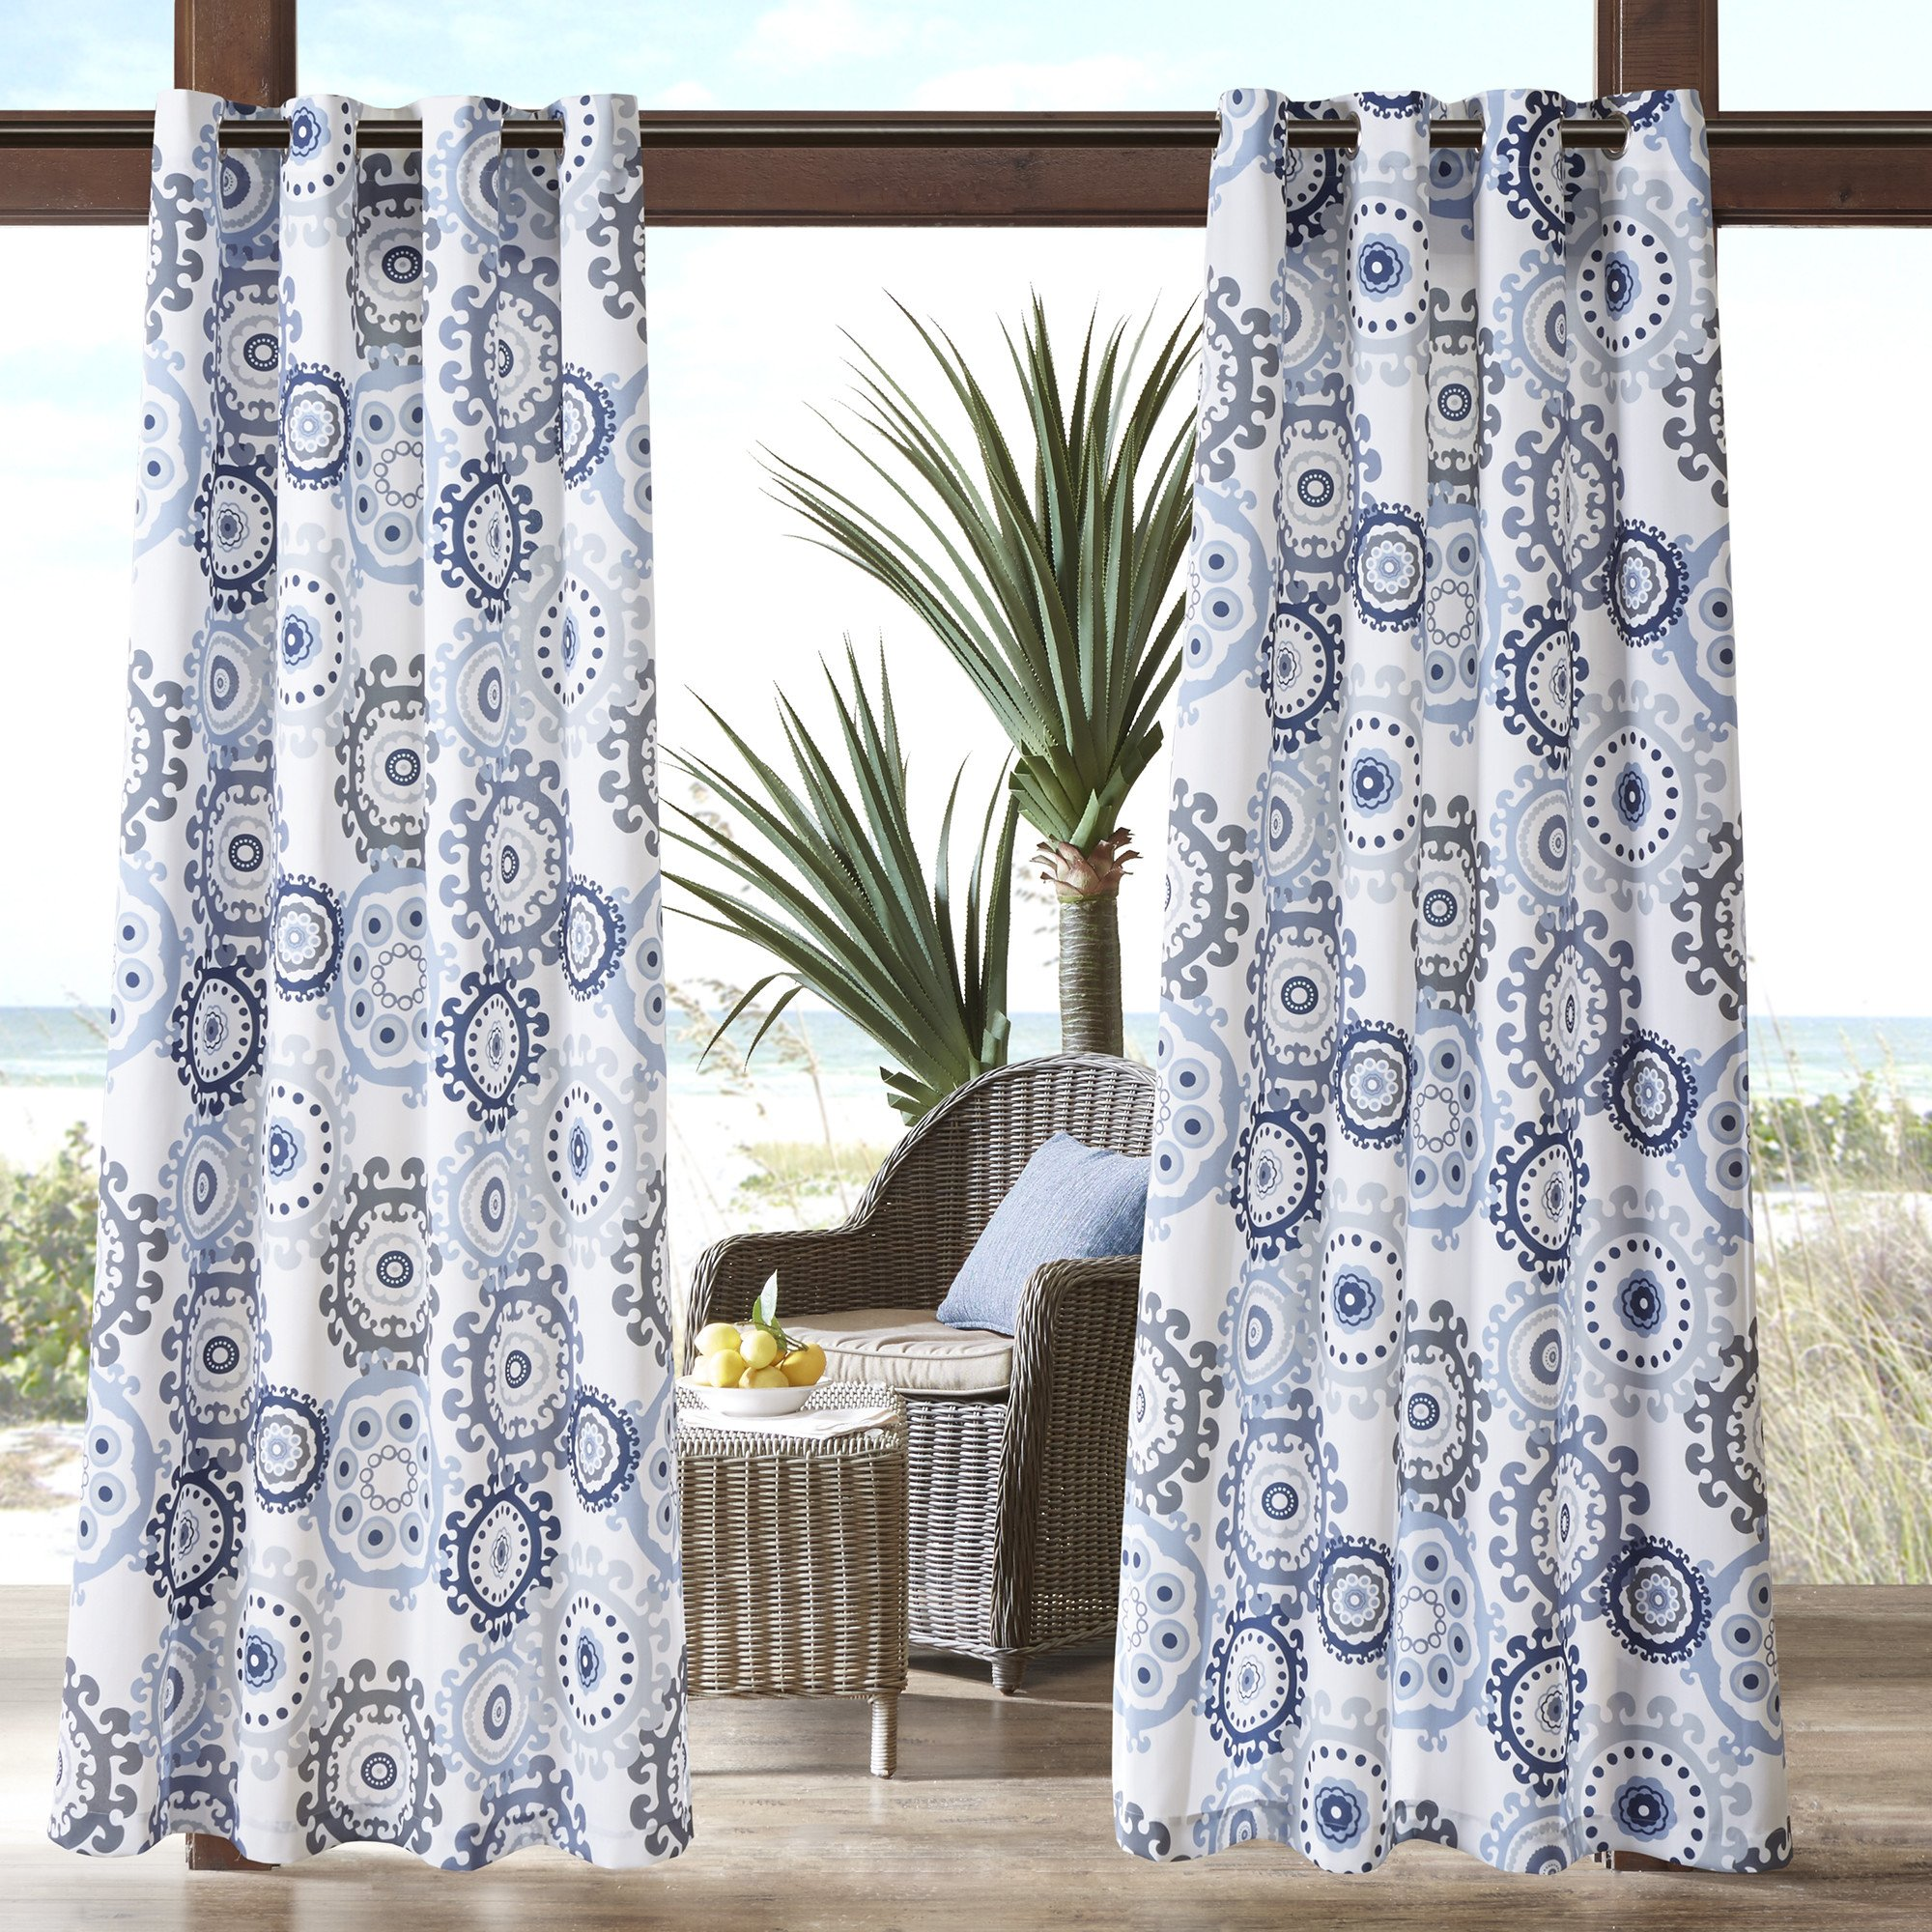 1 Piece Indigo Medallion Gazebo Curtain Panel 84 Inch, Blue Floral Print Outdoor Curtain Light Blocking For Patio Porch, Water Resistant Indoor/outdoor Drape Pergola Garden Sunroom Grommet, Polyester